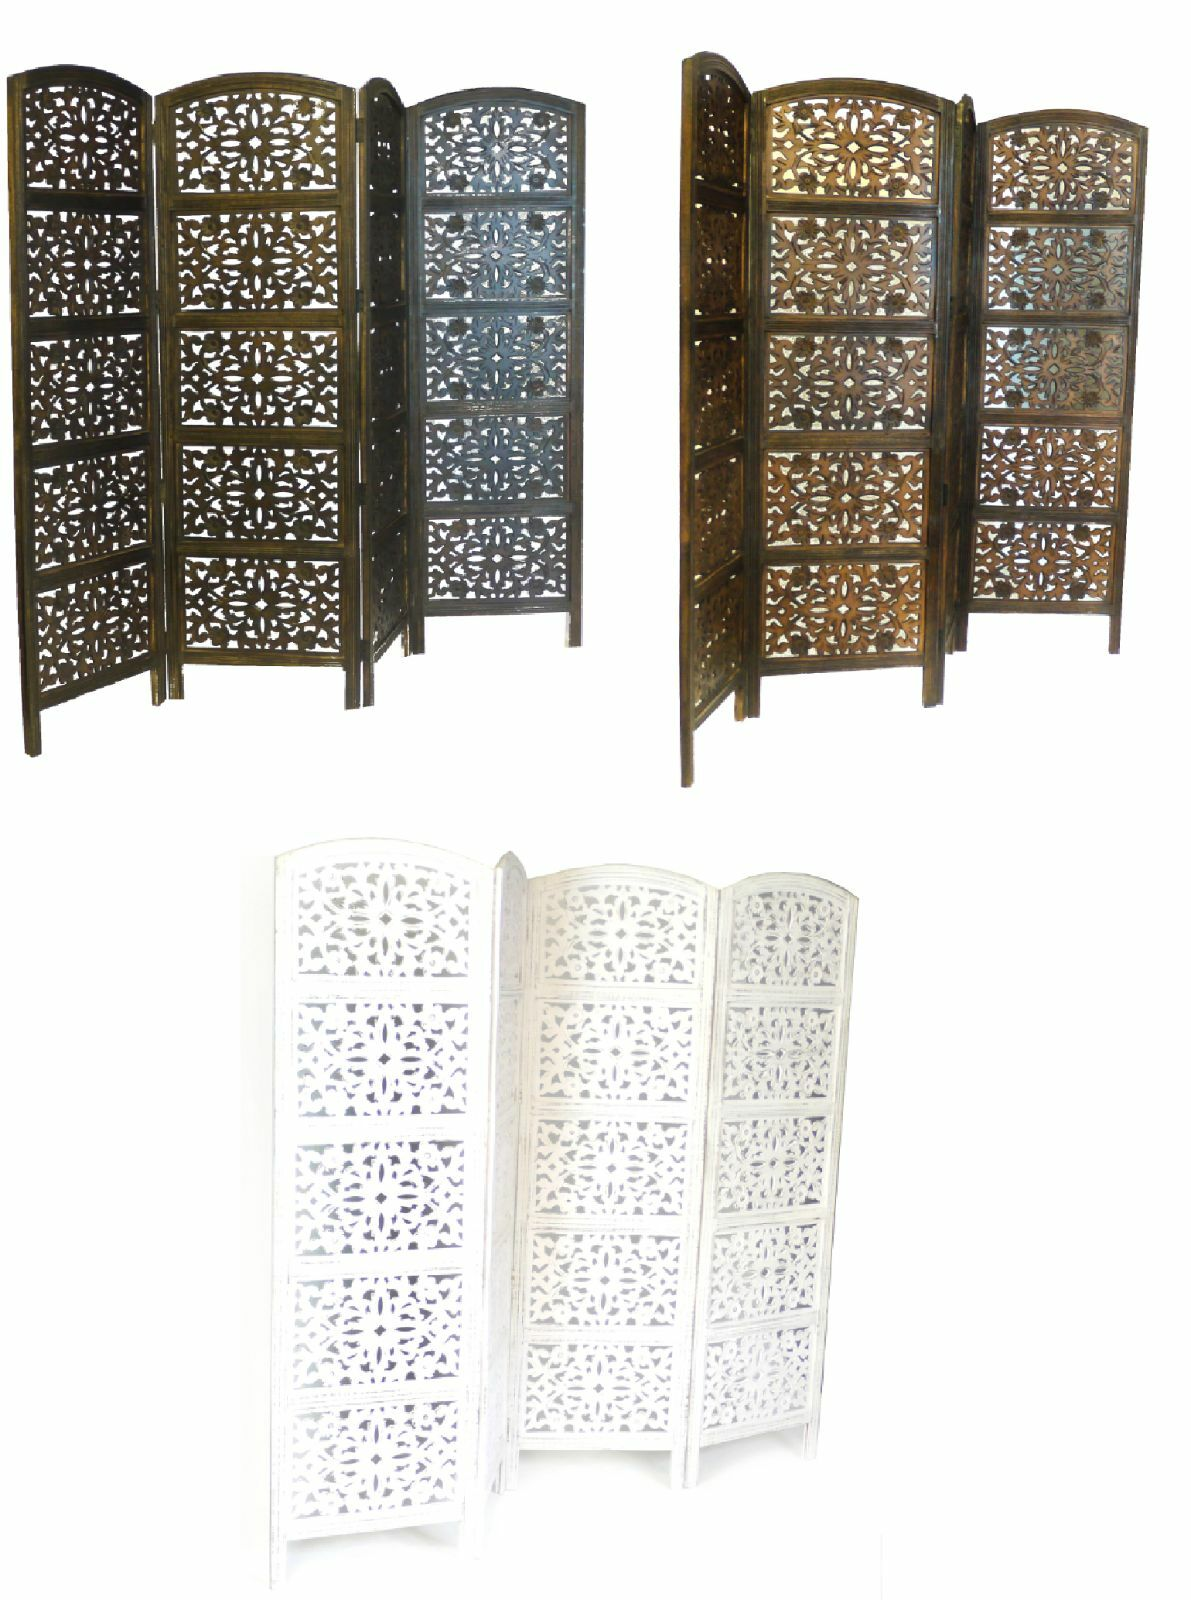 4 Panel Carved Heavy Duty Indian Screen Wooden Flower Design Screen Room Divider